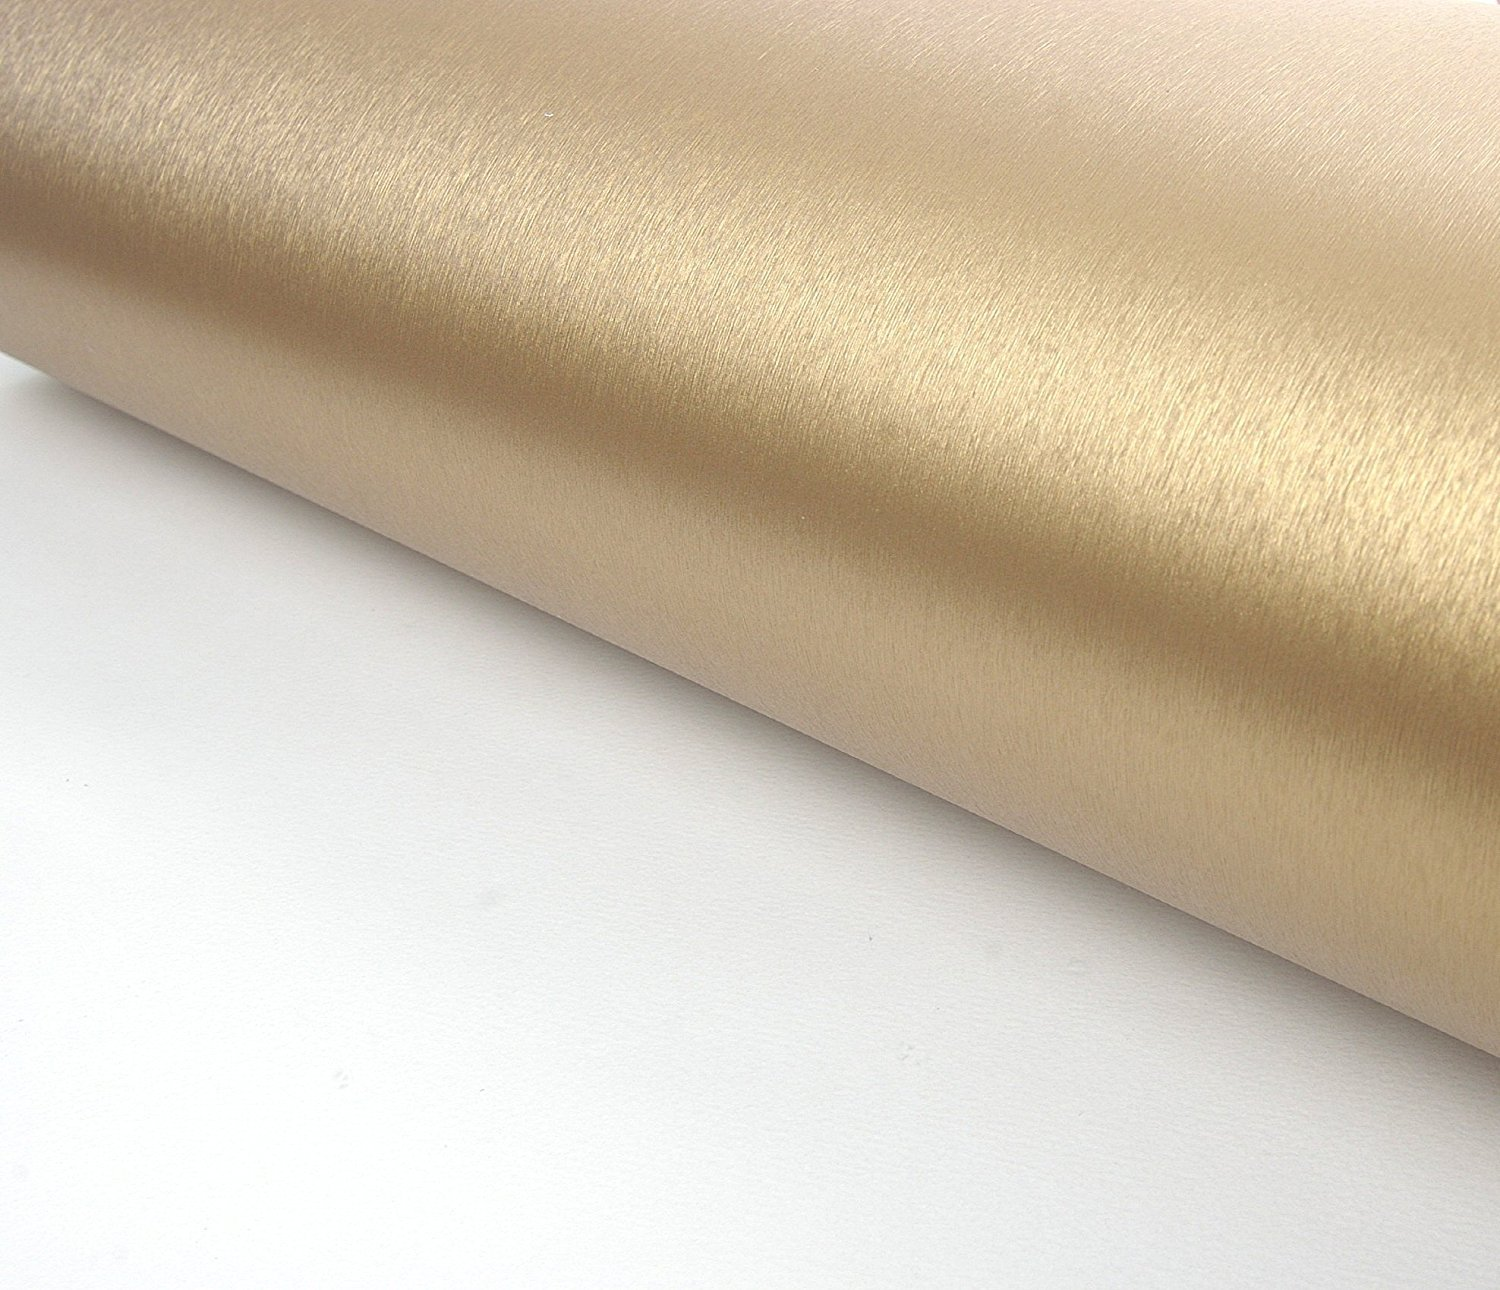 Brushed Metal Texture Contact Paper Film Vinyl Self Adhesive Peel-stick Removable (Gold) Very Berry Sticker COMIN18JU074777